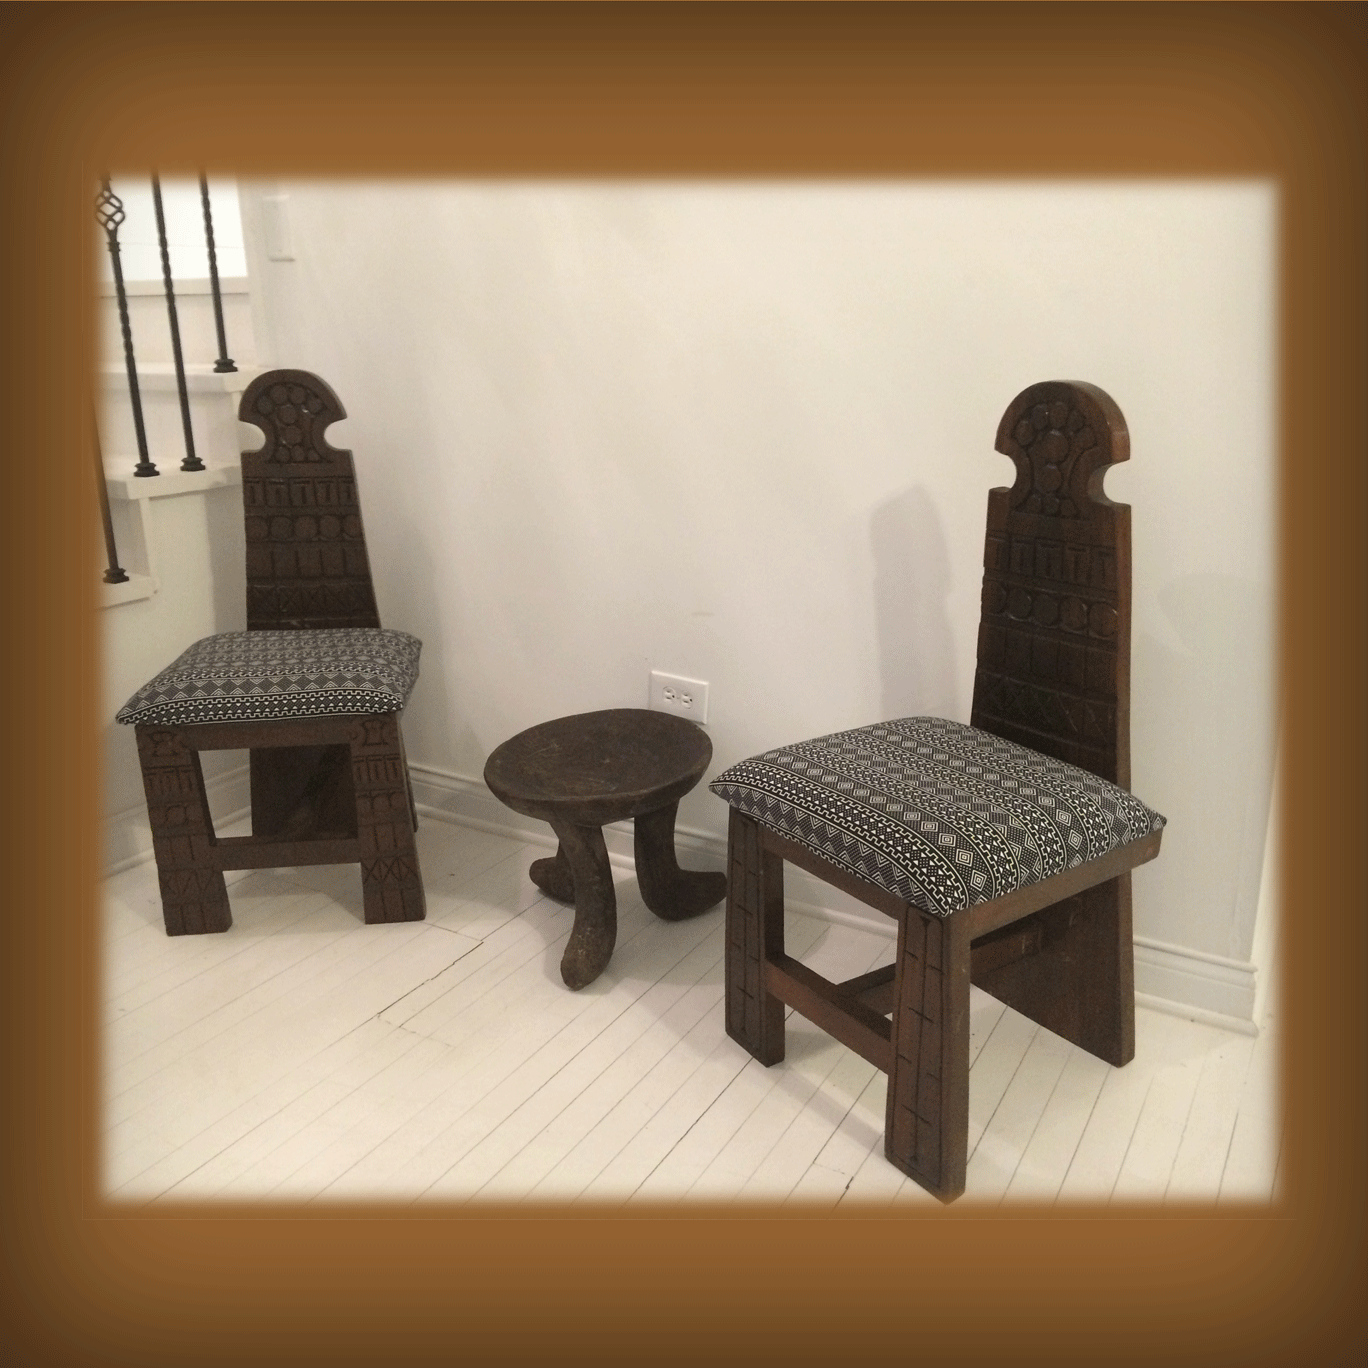 HAND CARVED CHAIR WITH TALL BACK – REUPHOLSTERED CUSHION | African ...